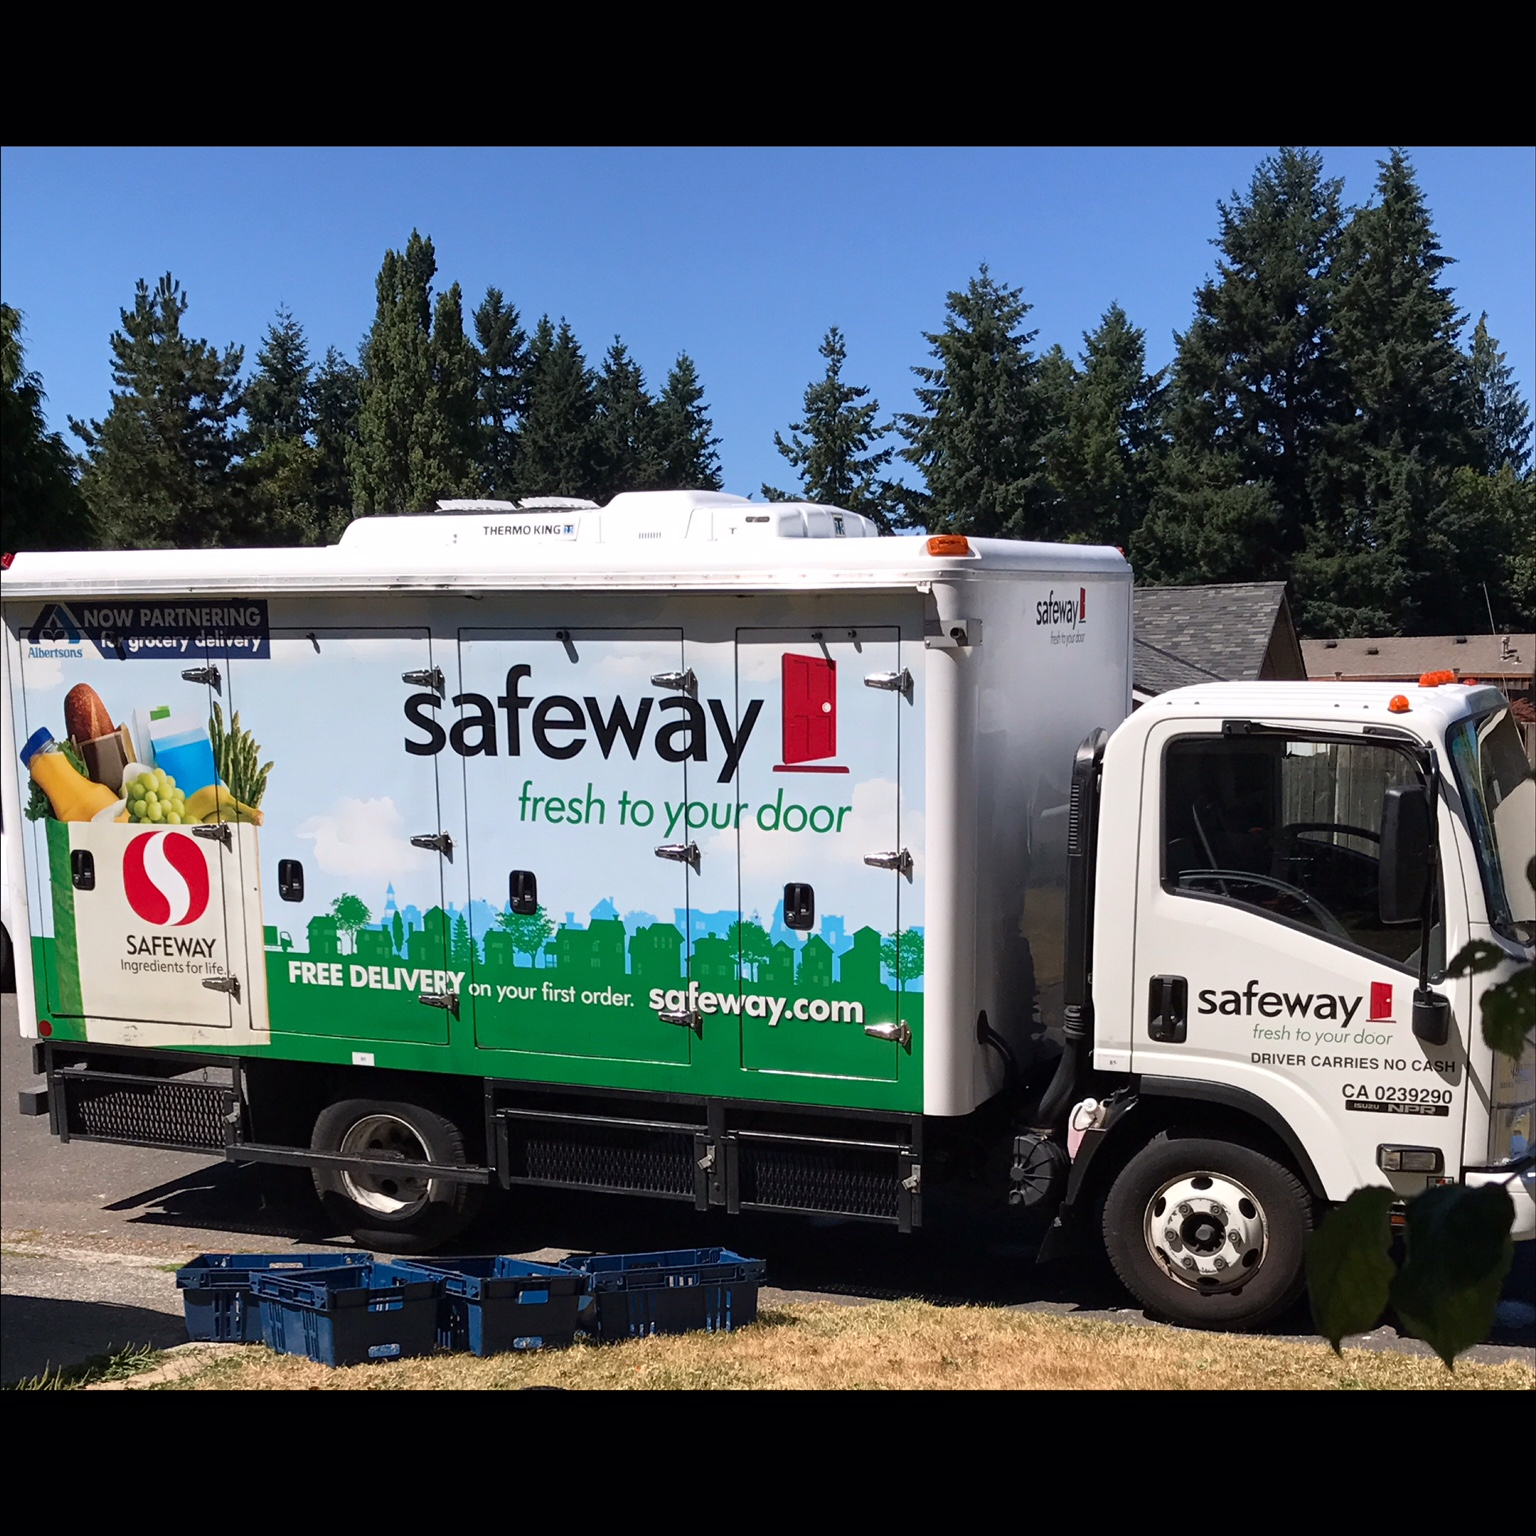 Safewaycom Delivery Service 20 off FREE Delivery First Order